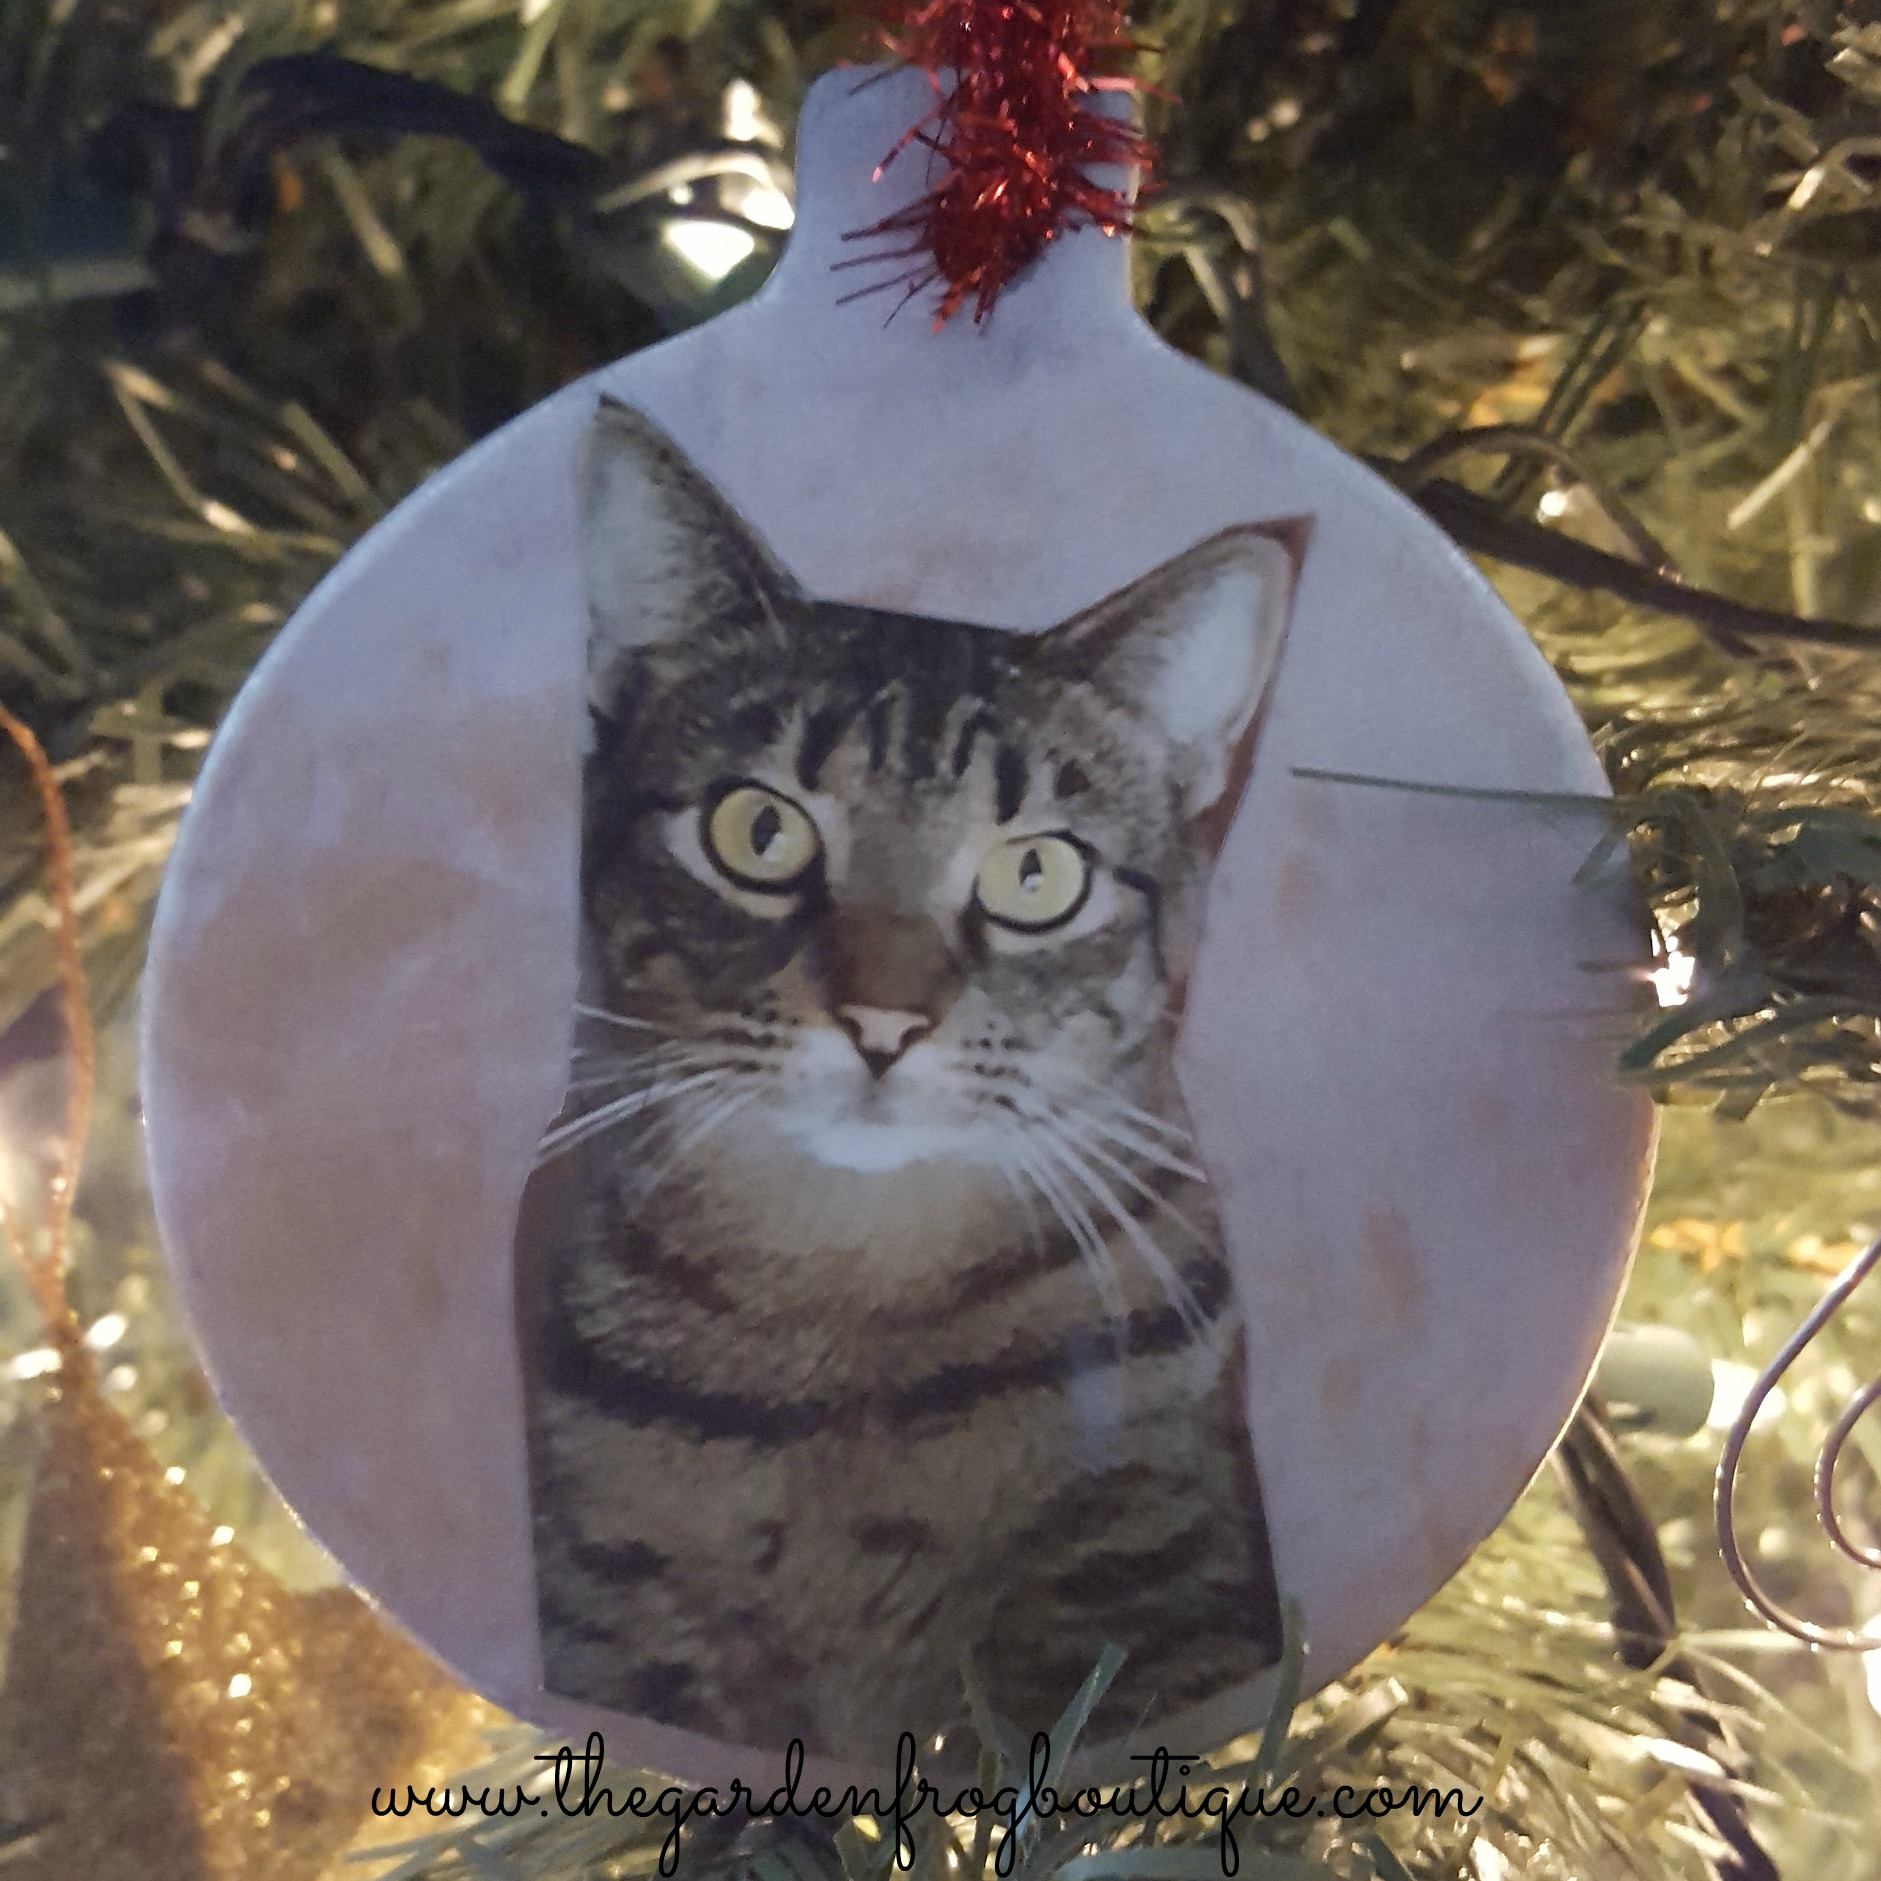 heres the ornament with a cut out picture and mod podge pet photo diy christmas ornaments from